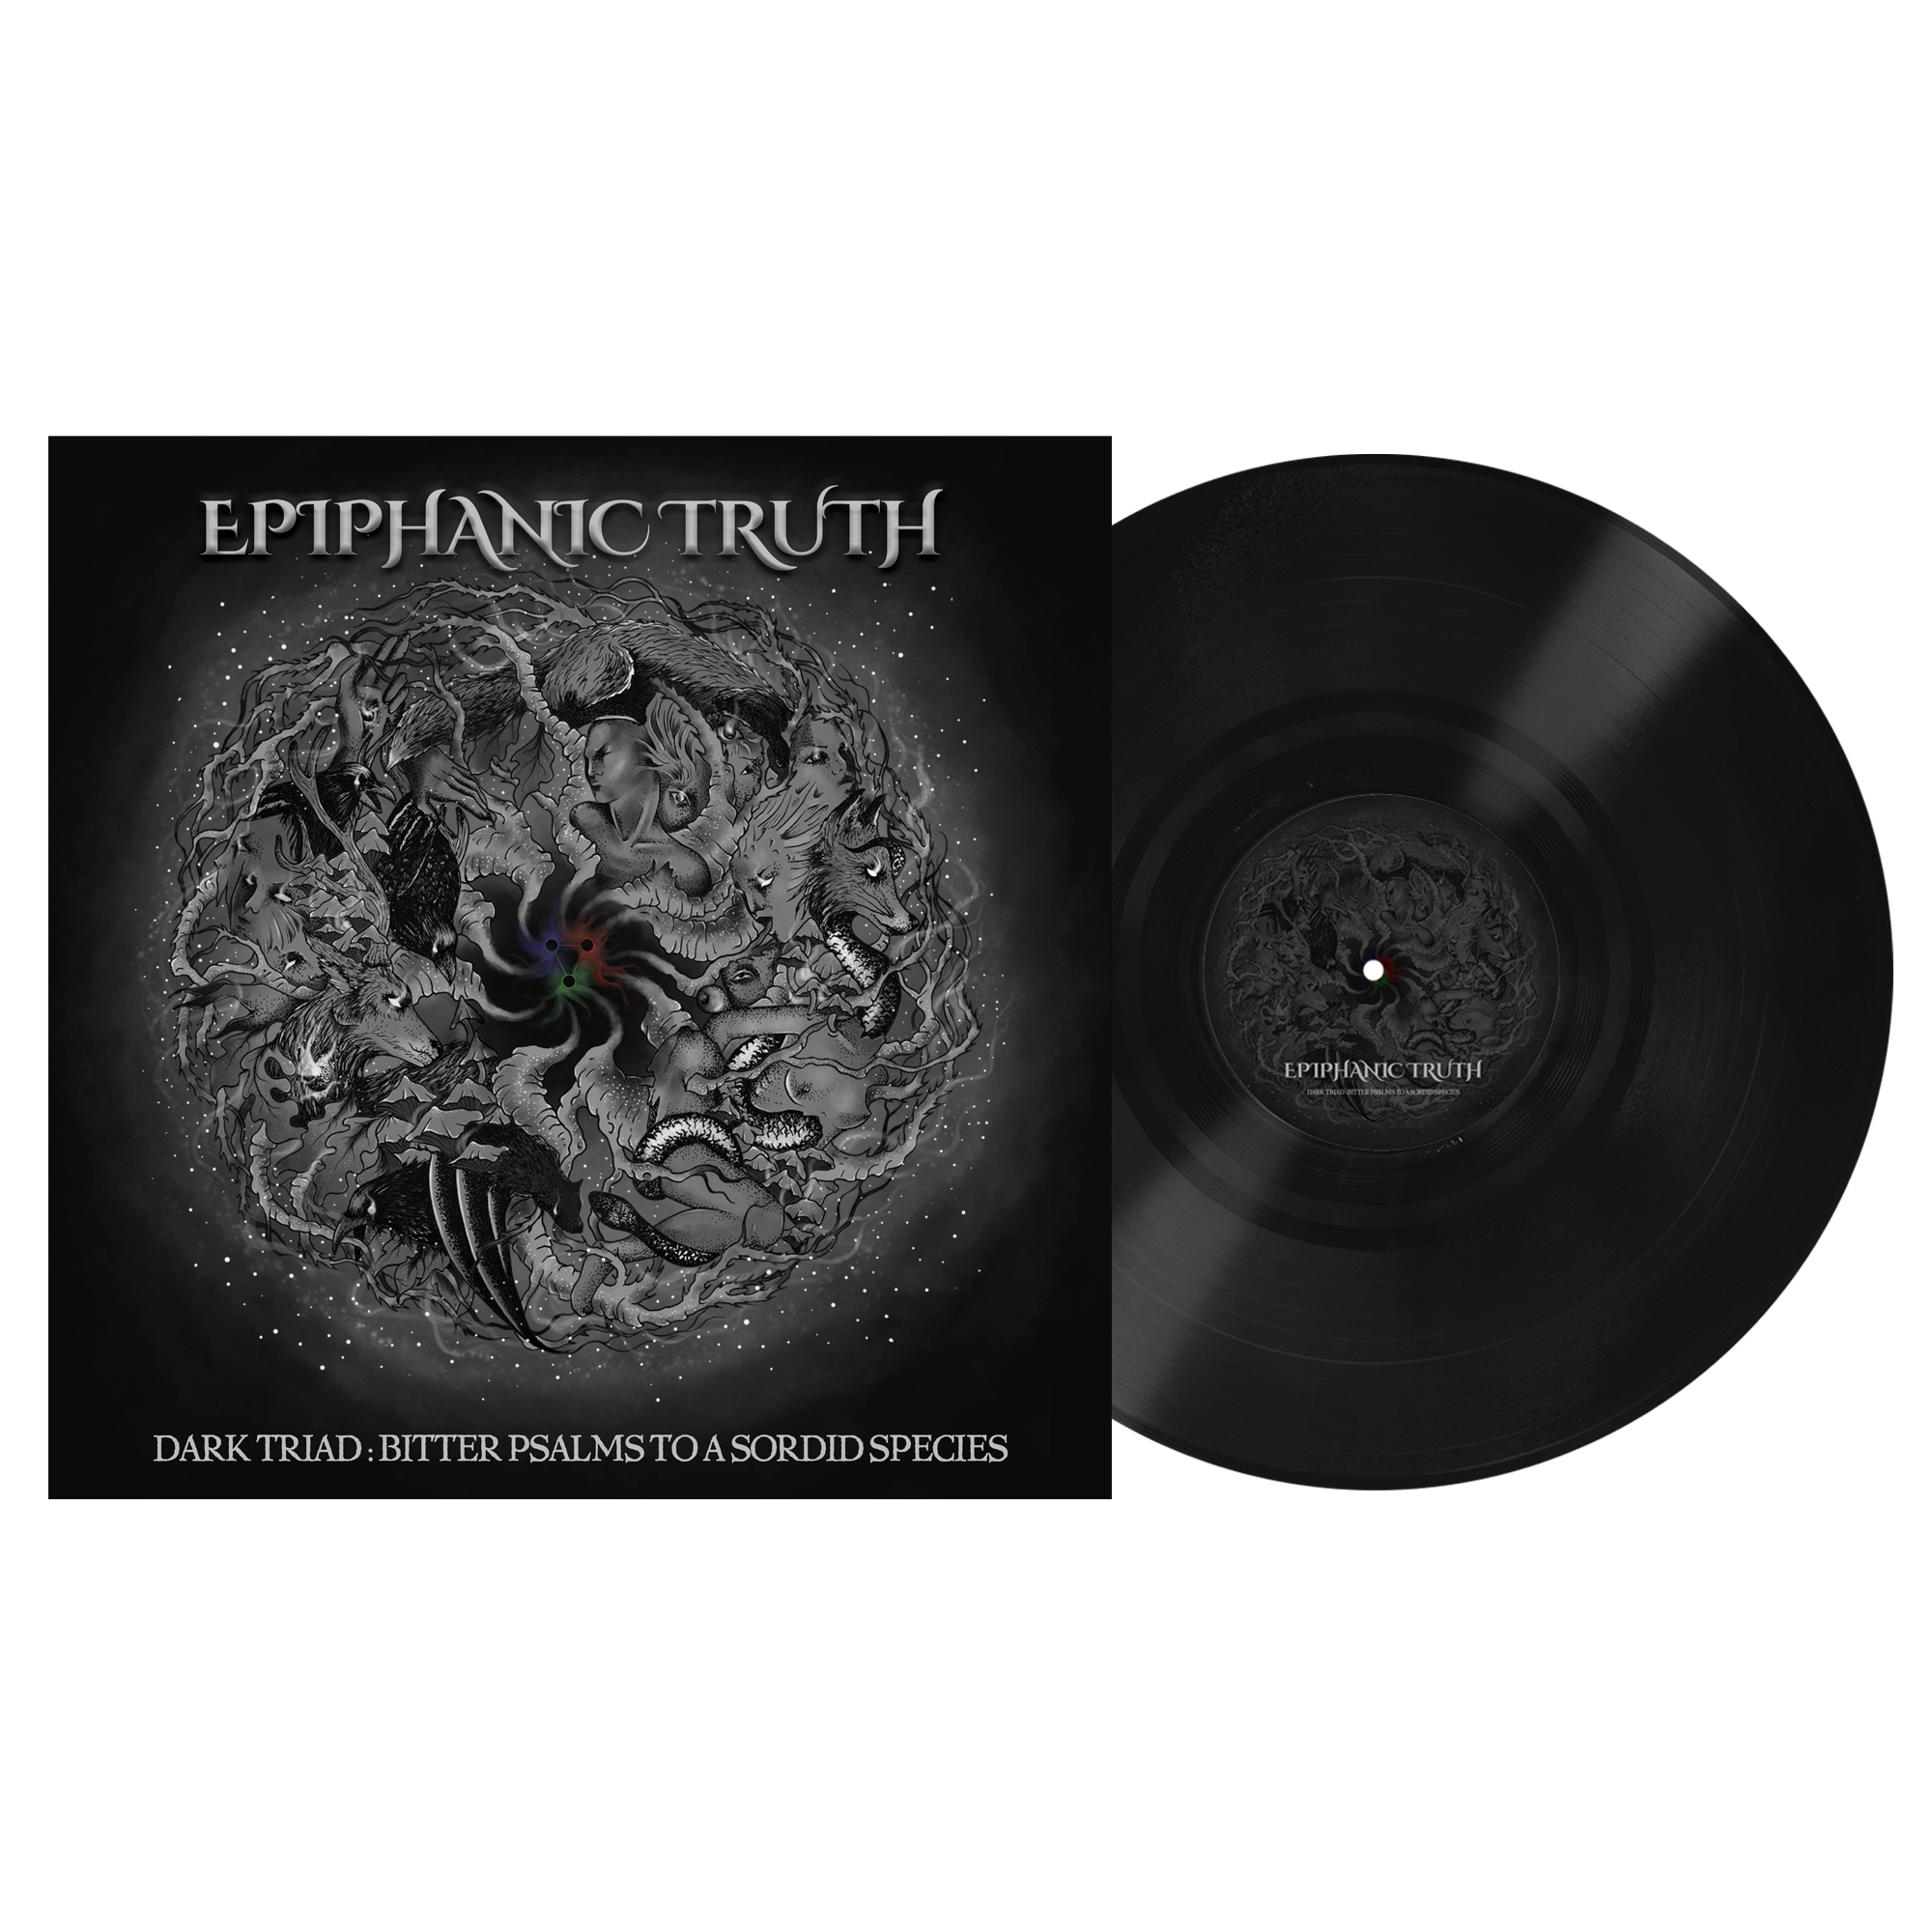 Epiphanic Truth - Dark Triad: Bitter Psalms to a Sordid Species PRE-ORDER